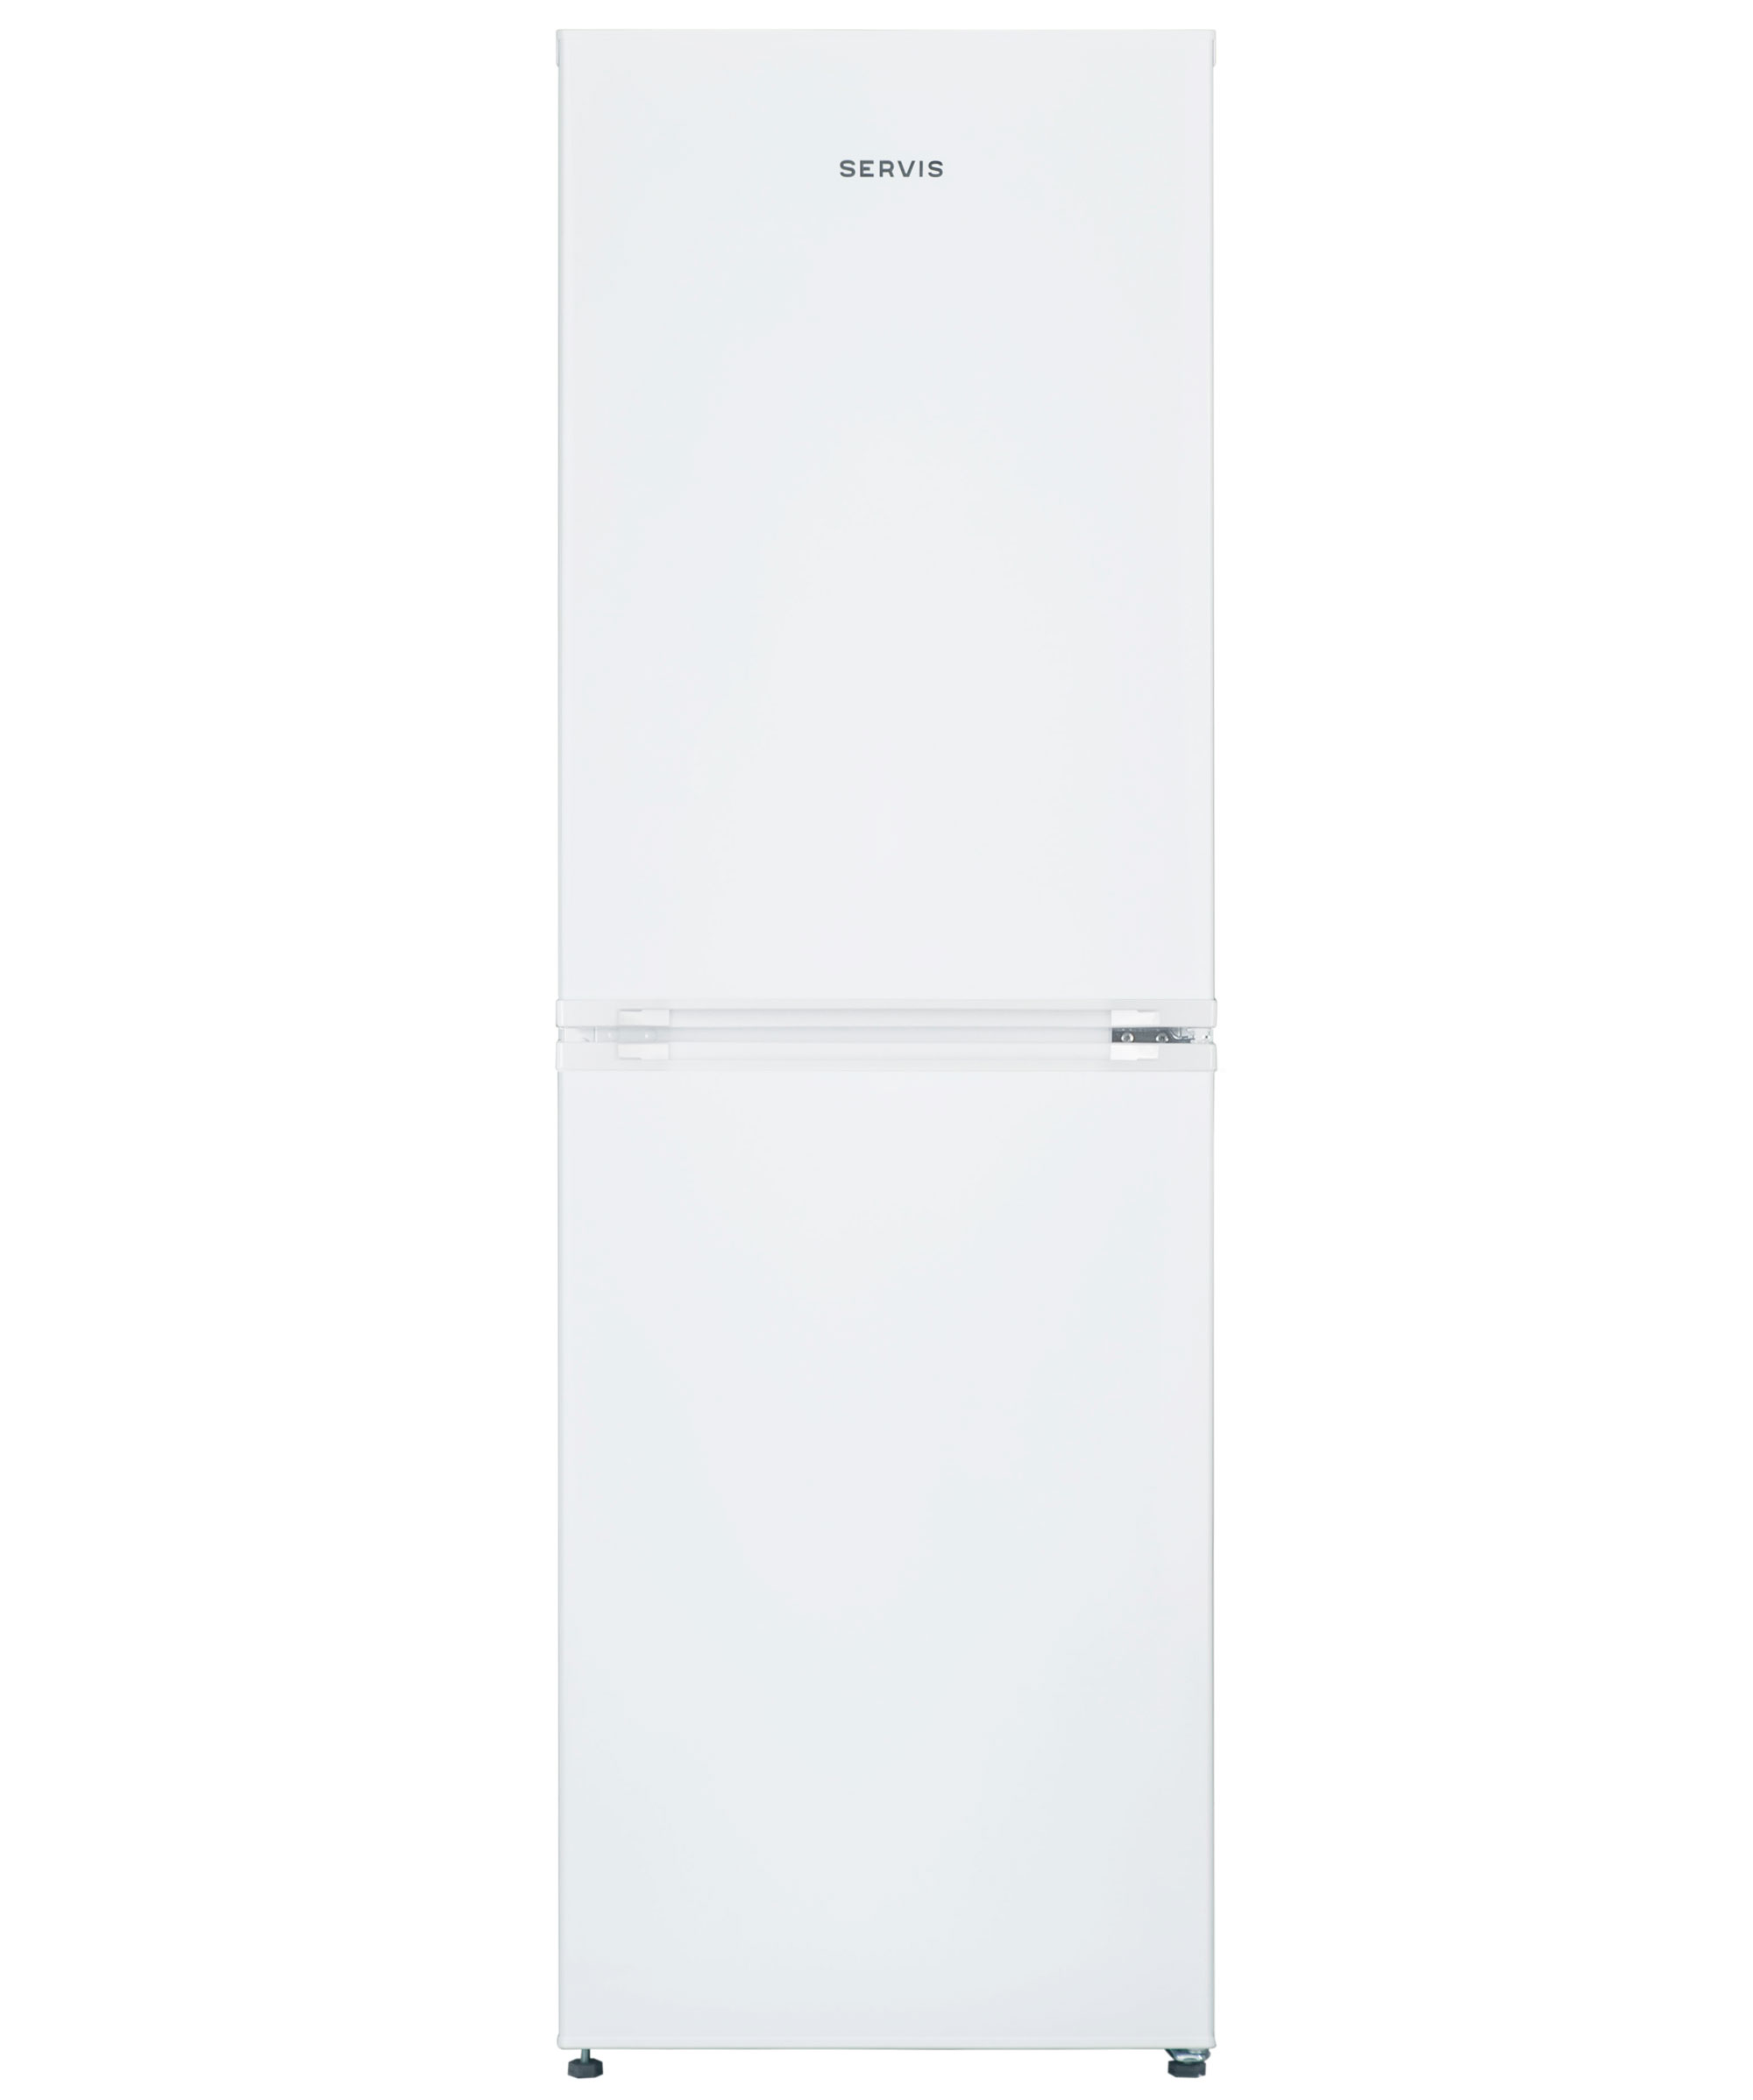 BCS148W - Fridge Freezer